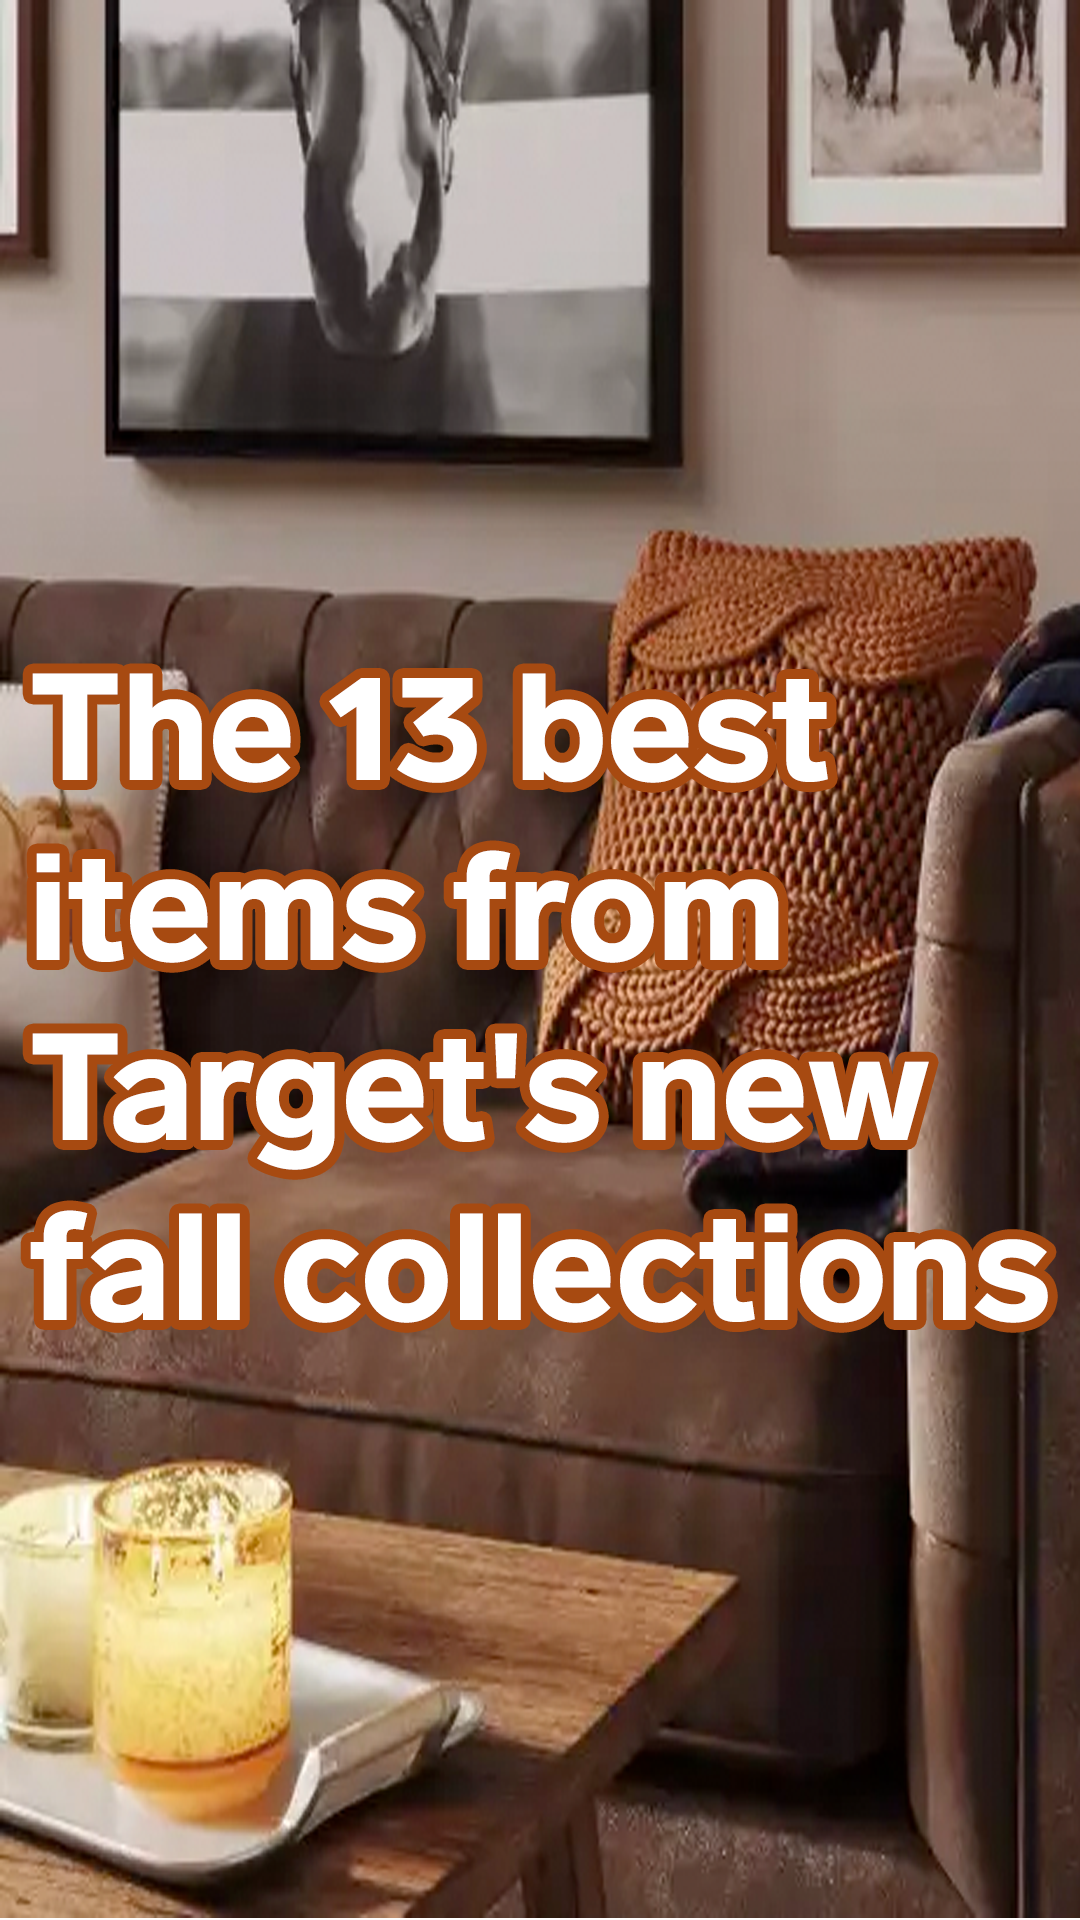 The 13 best items to buy from Target's new fall